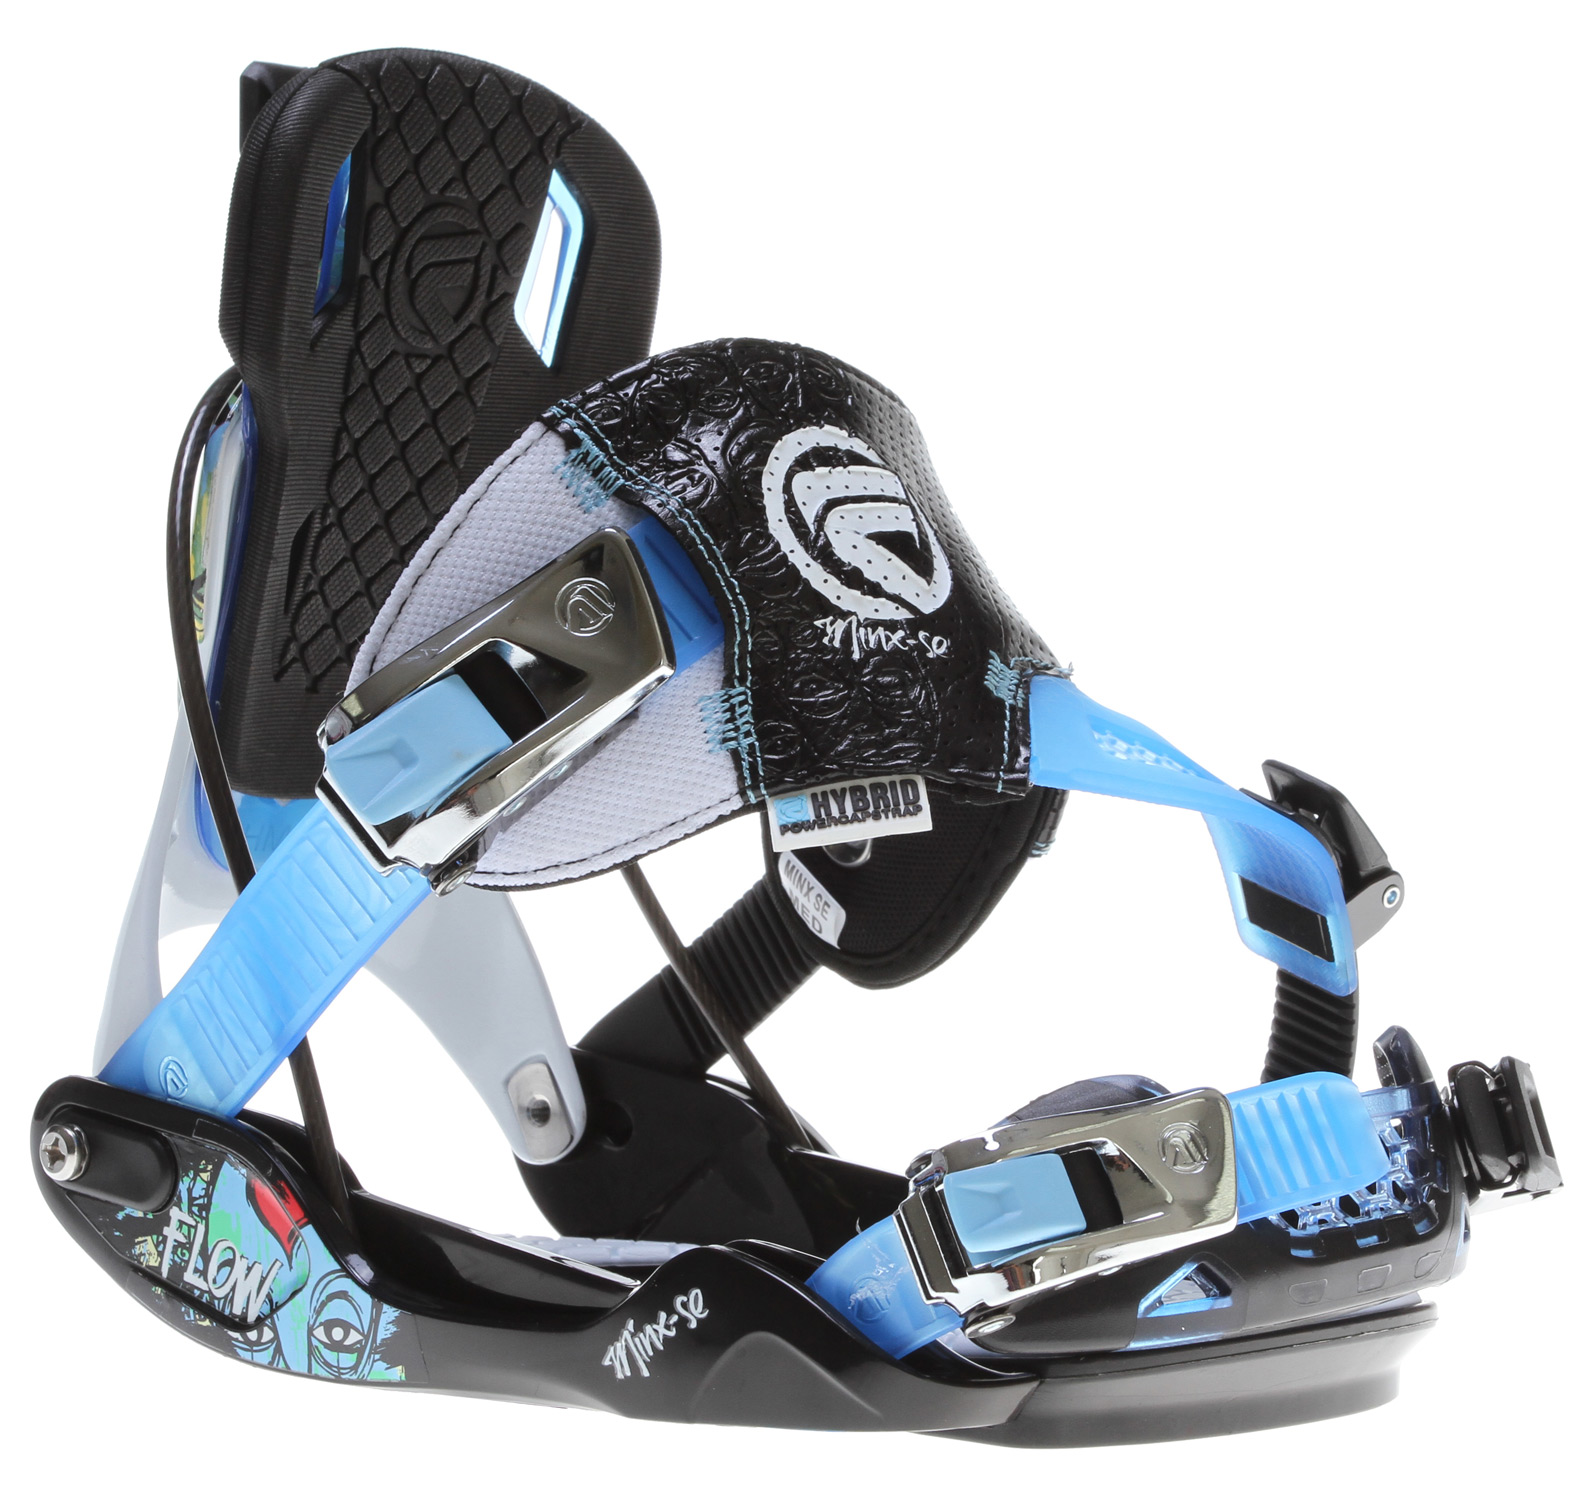 Snowboard The MINX-SE is a piece of art. Designed to get noticed on the slopes, the Mix-SE boasts our new HYBRID PowerCapStrap for unrestricted freedom yet powerful riding. The LSR-buckles allow SideEntry to complement our proven SpeedEntry technology and the Mod Back has a responsive aluminum alloy heelcup and a flexible TWEAK.6 topzone so that you stay in control wherever you venture.Key Features of the Flow Minx SE Snowboard Bindings: The H-series molded baseplate is engineered with a wider platform for stability and ease of entry and exit ModBack with Aluminum alloy heelcup and Urethane TWEAK.6 SupportPanel for a softer flex in the top-zone with a comfy KushControl wrapped EVA pad HYBRID PowerCapStrap with LSR-buckles for your choice of easy and functional SpeedEntry or conventional SideEntry Tool-less FWD-lean adjustment Combi mounting-disk for 4x4 and 3HP Overall moderately stiff flex (3) for a snappy all-mountain response but enough flex for that freestyle feel - $160.95